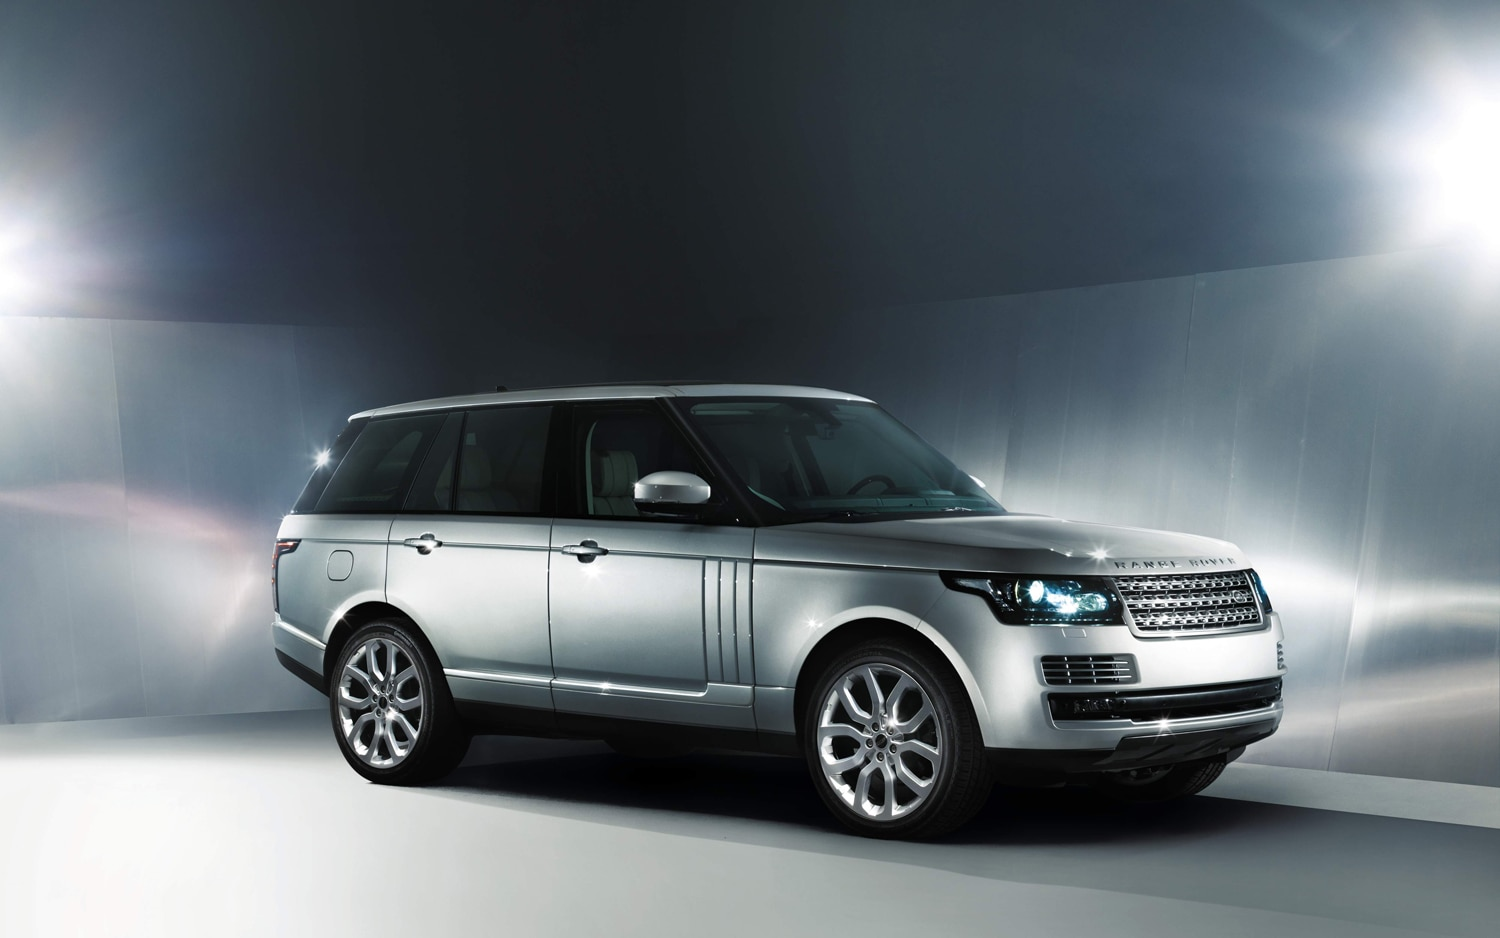 2013 Land Rover Range Rover Front Three Quarter1